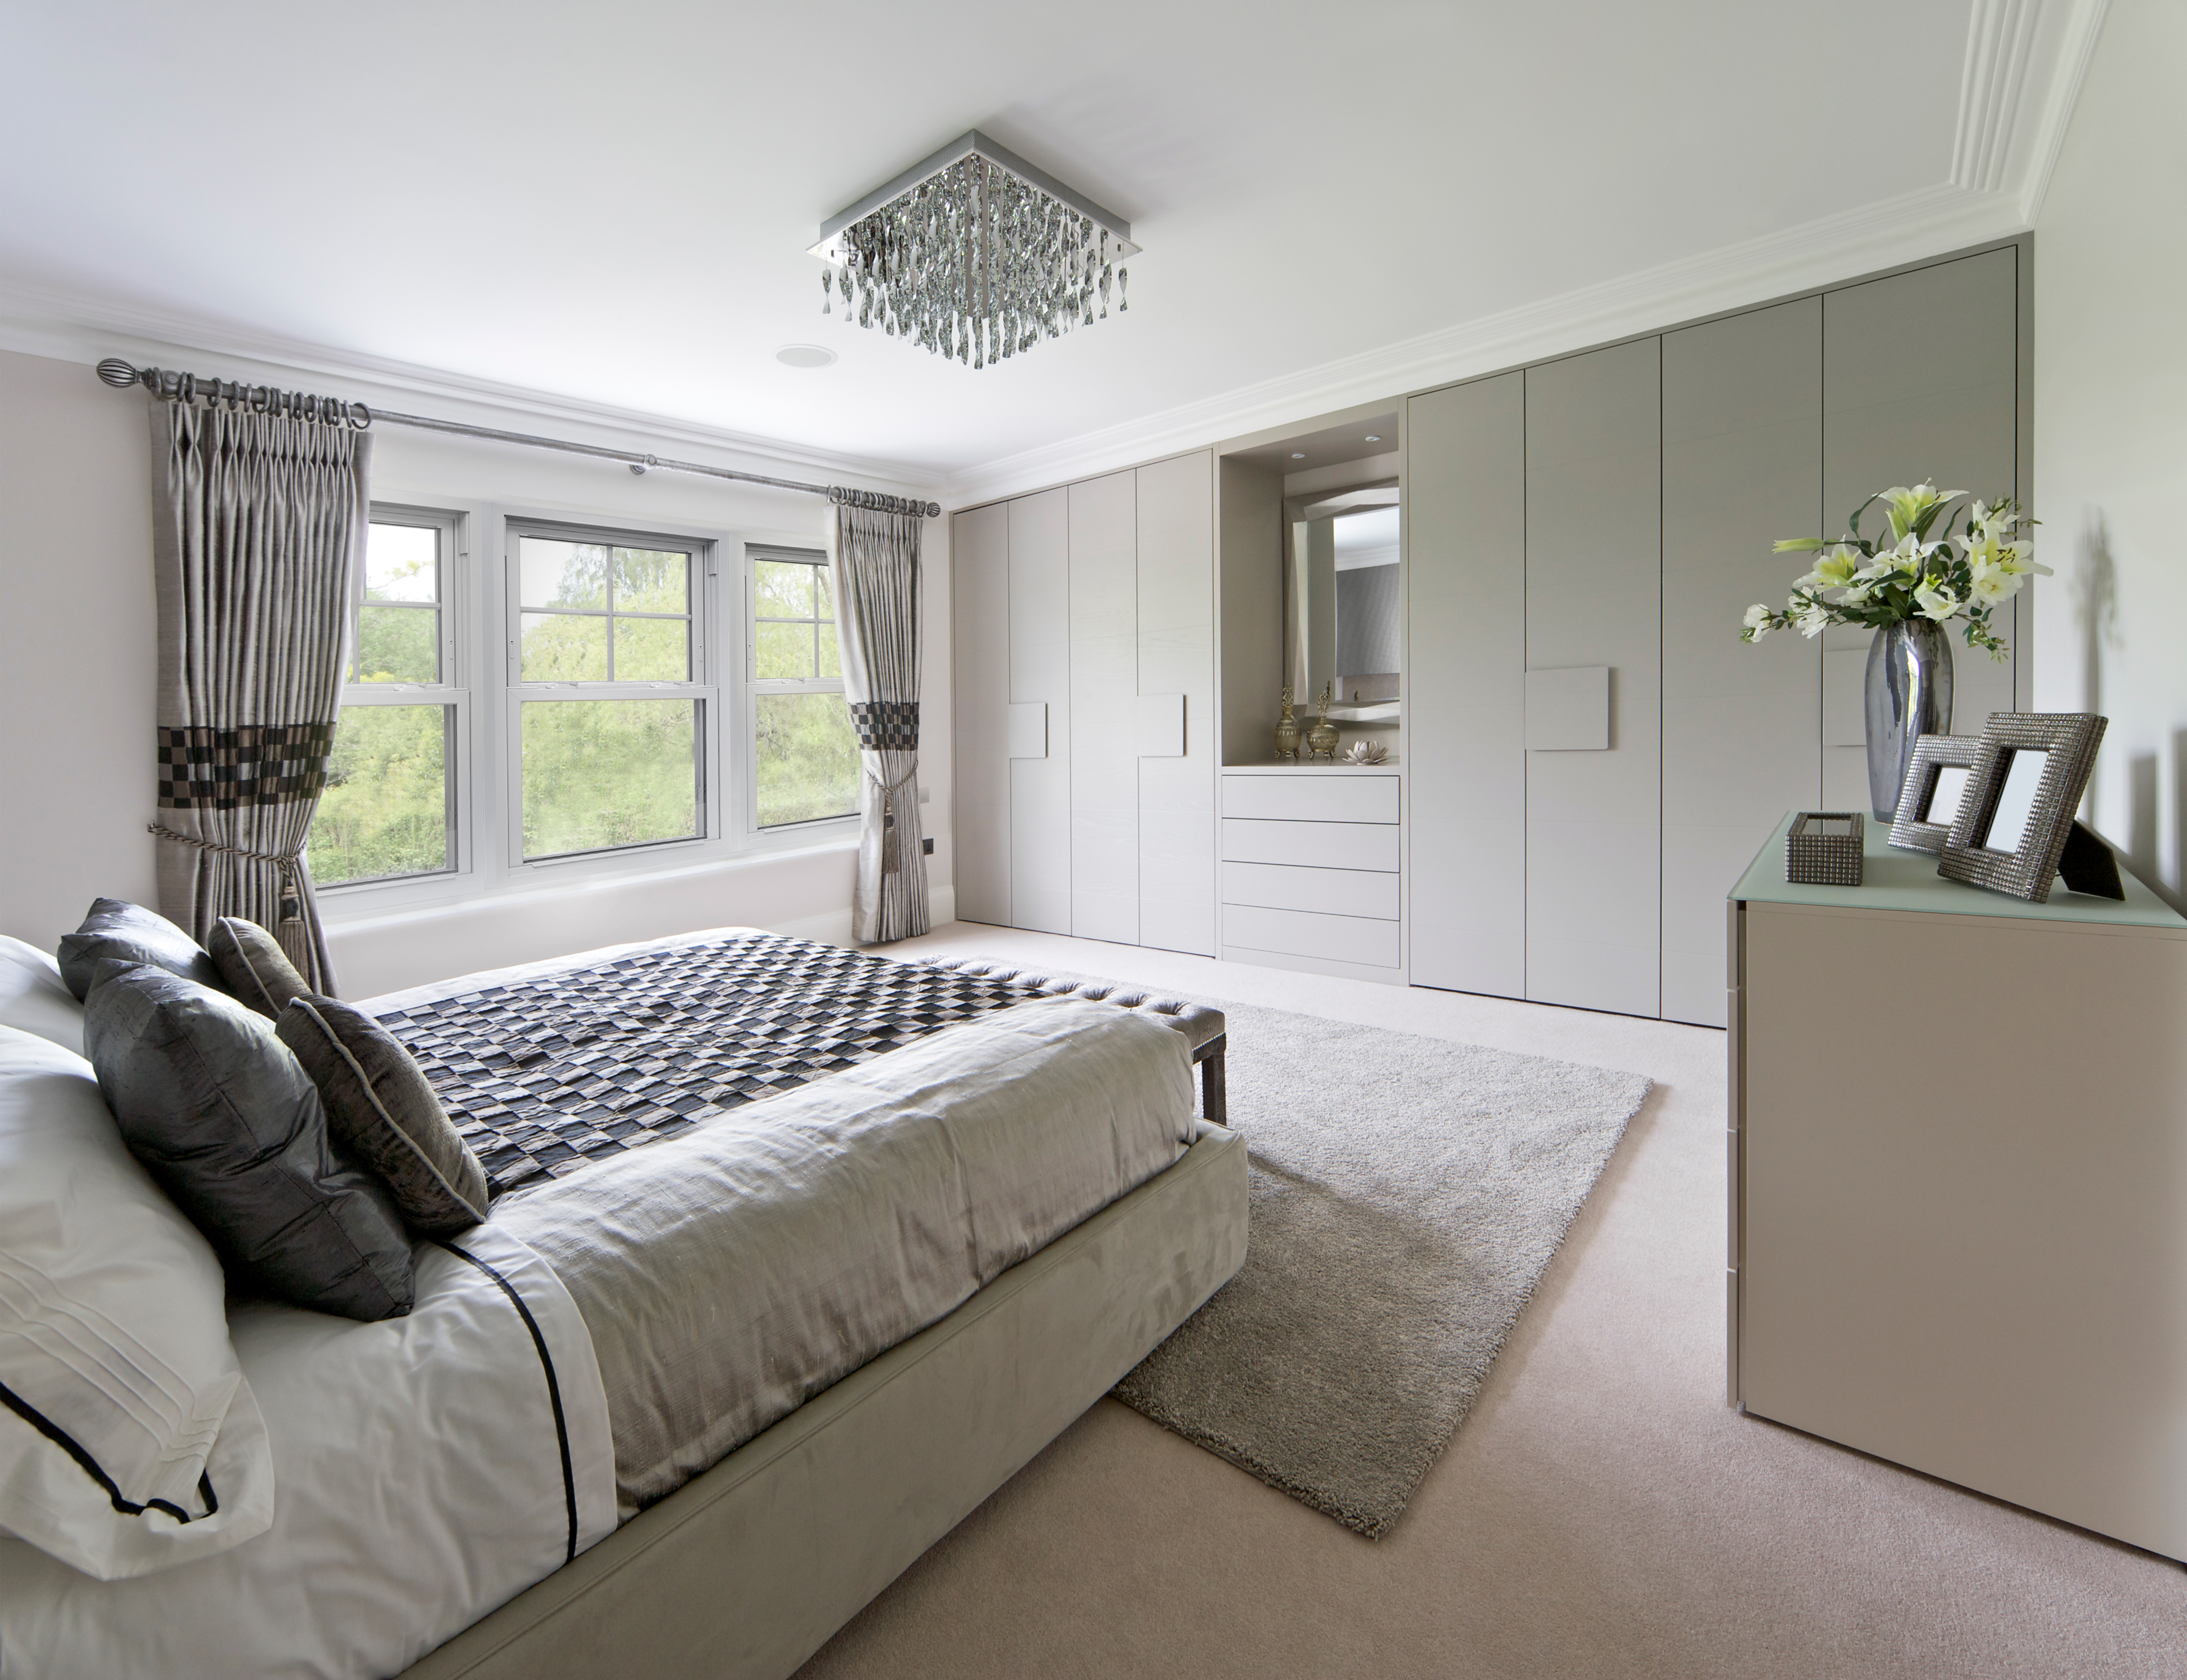 Best Window Styles for Master Bedrooms | Tundraland